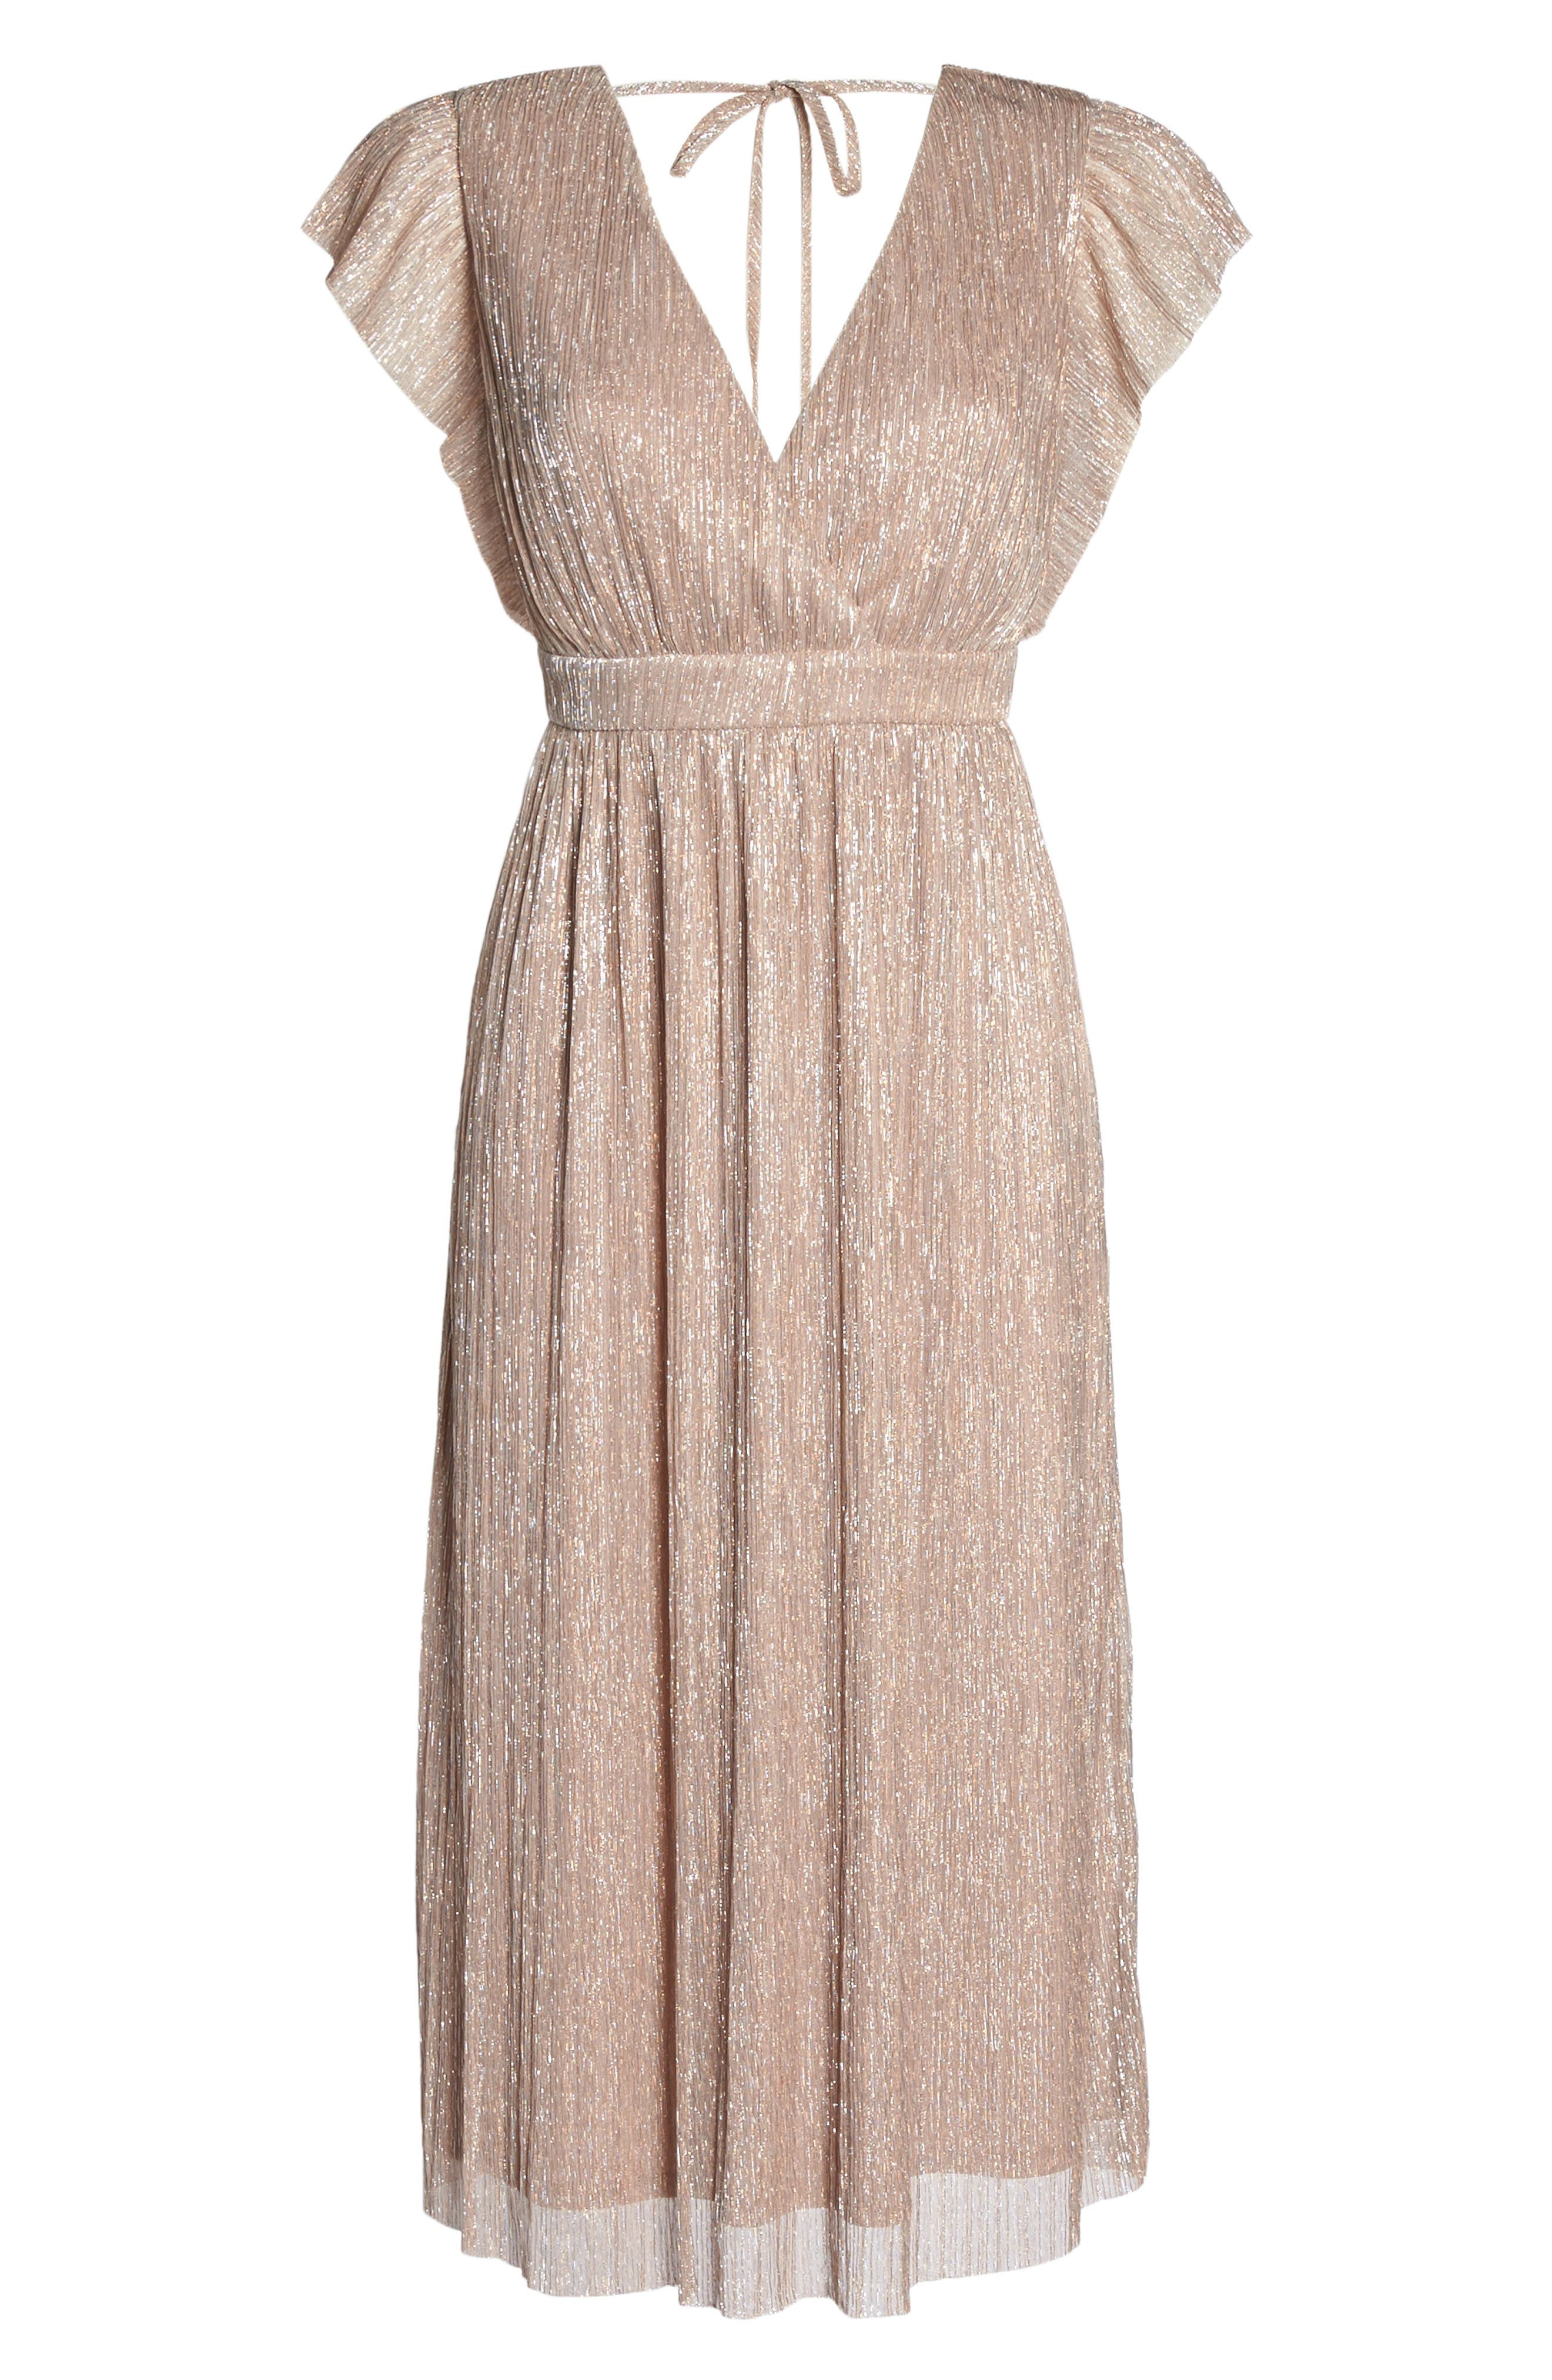 Metallic Midi Dress,                             Alternate thumbnail 6, color,                             650